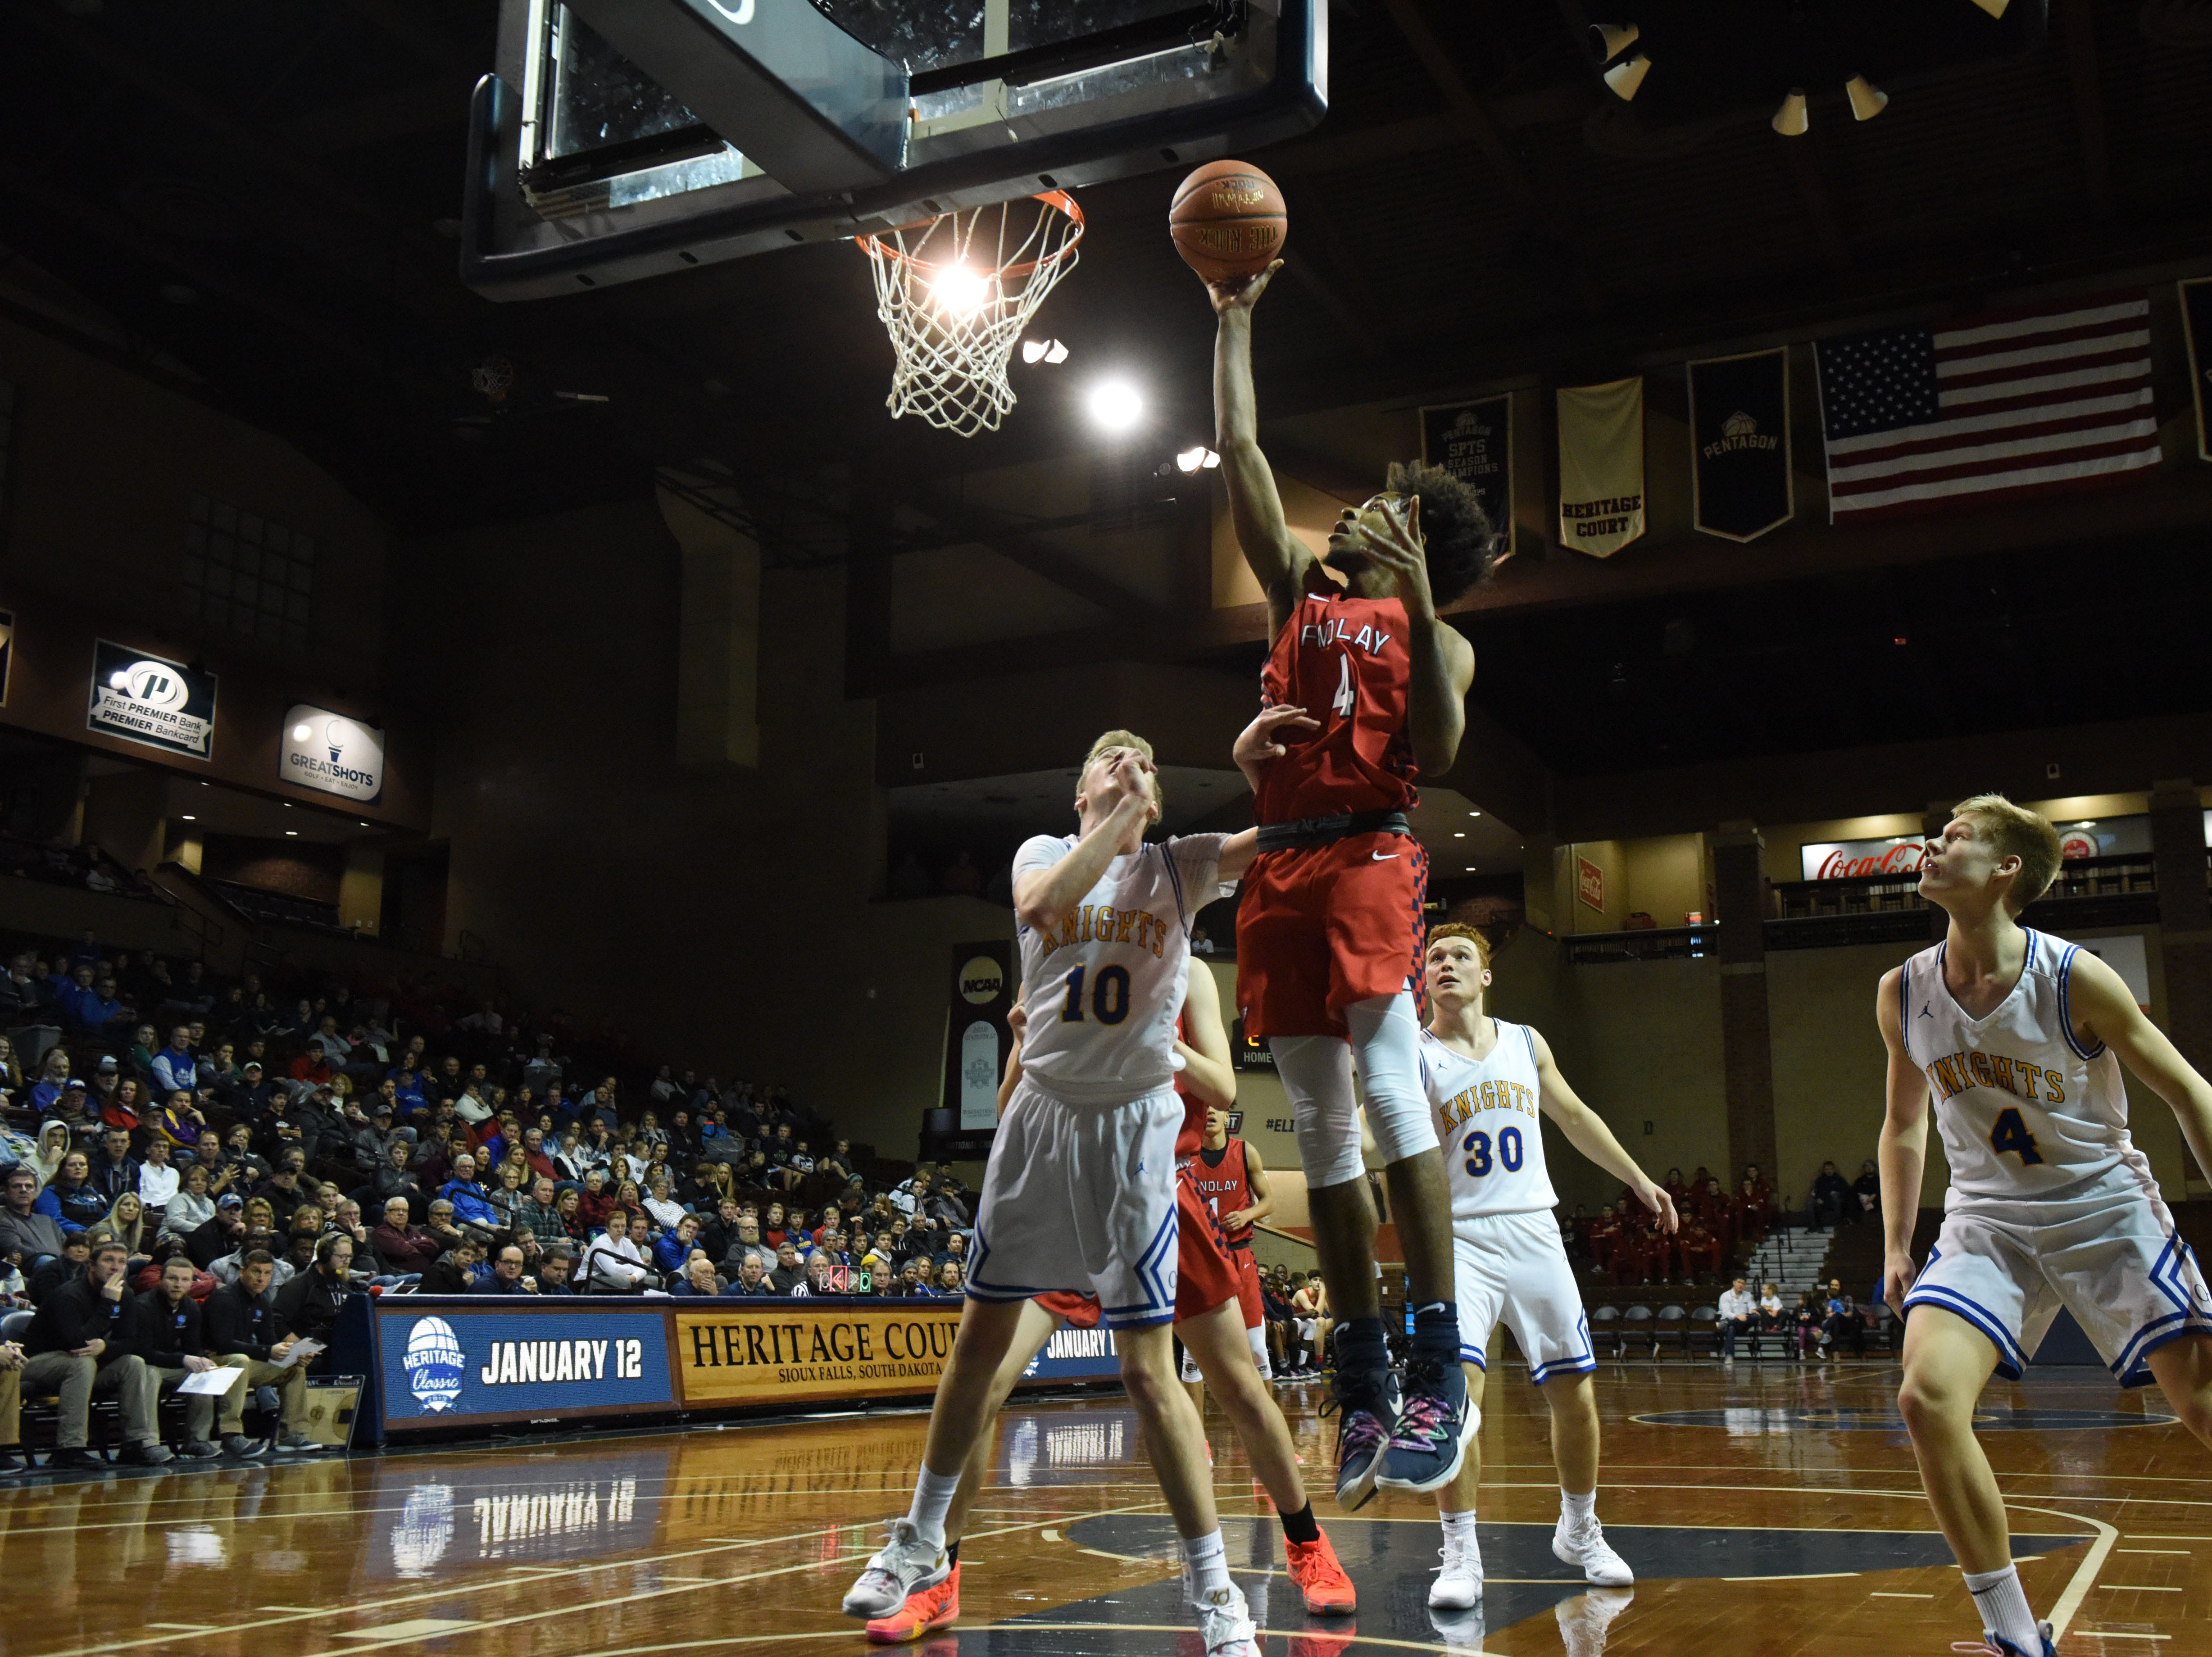 Findlay Prep's PJ Fuller (4) goes up for a shot during a game against O'Gorman at the Hoop City Classic at the Sanford Pentagon in Sioux Falls, S.D., Saturday, Dec. 29, 2018.